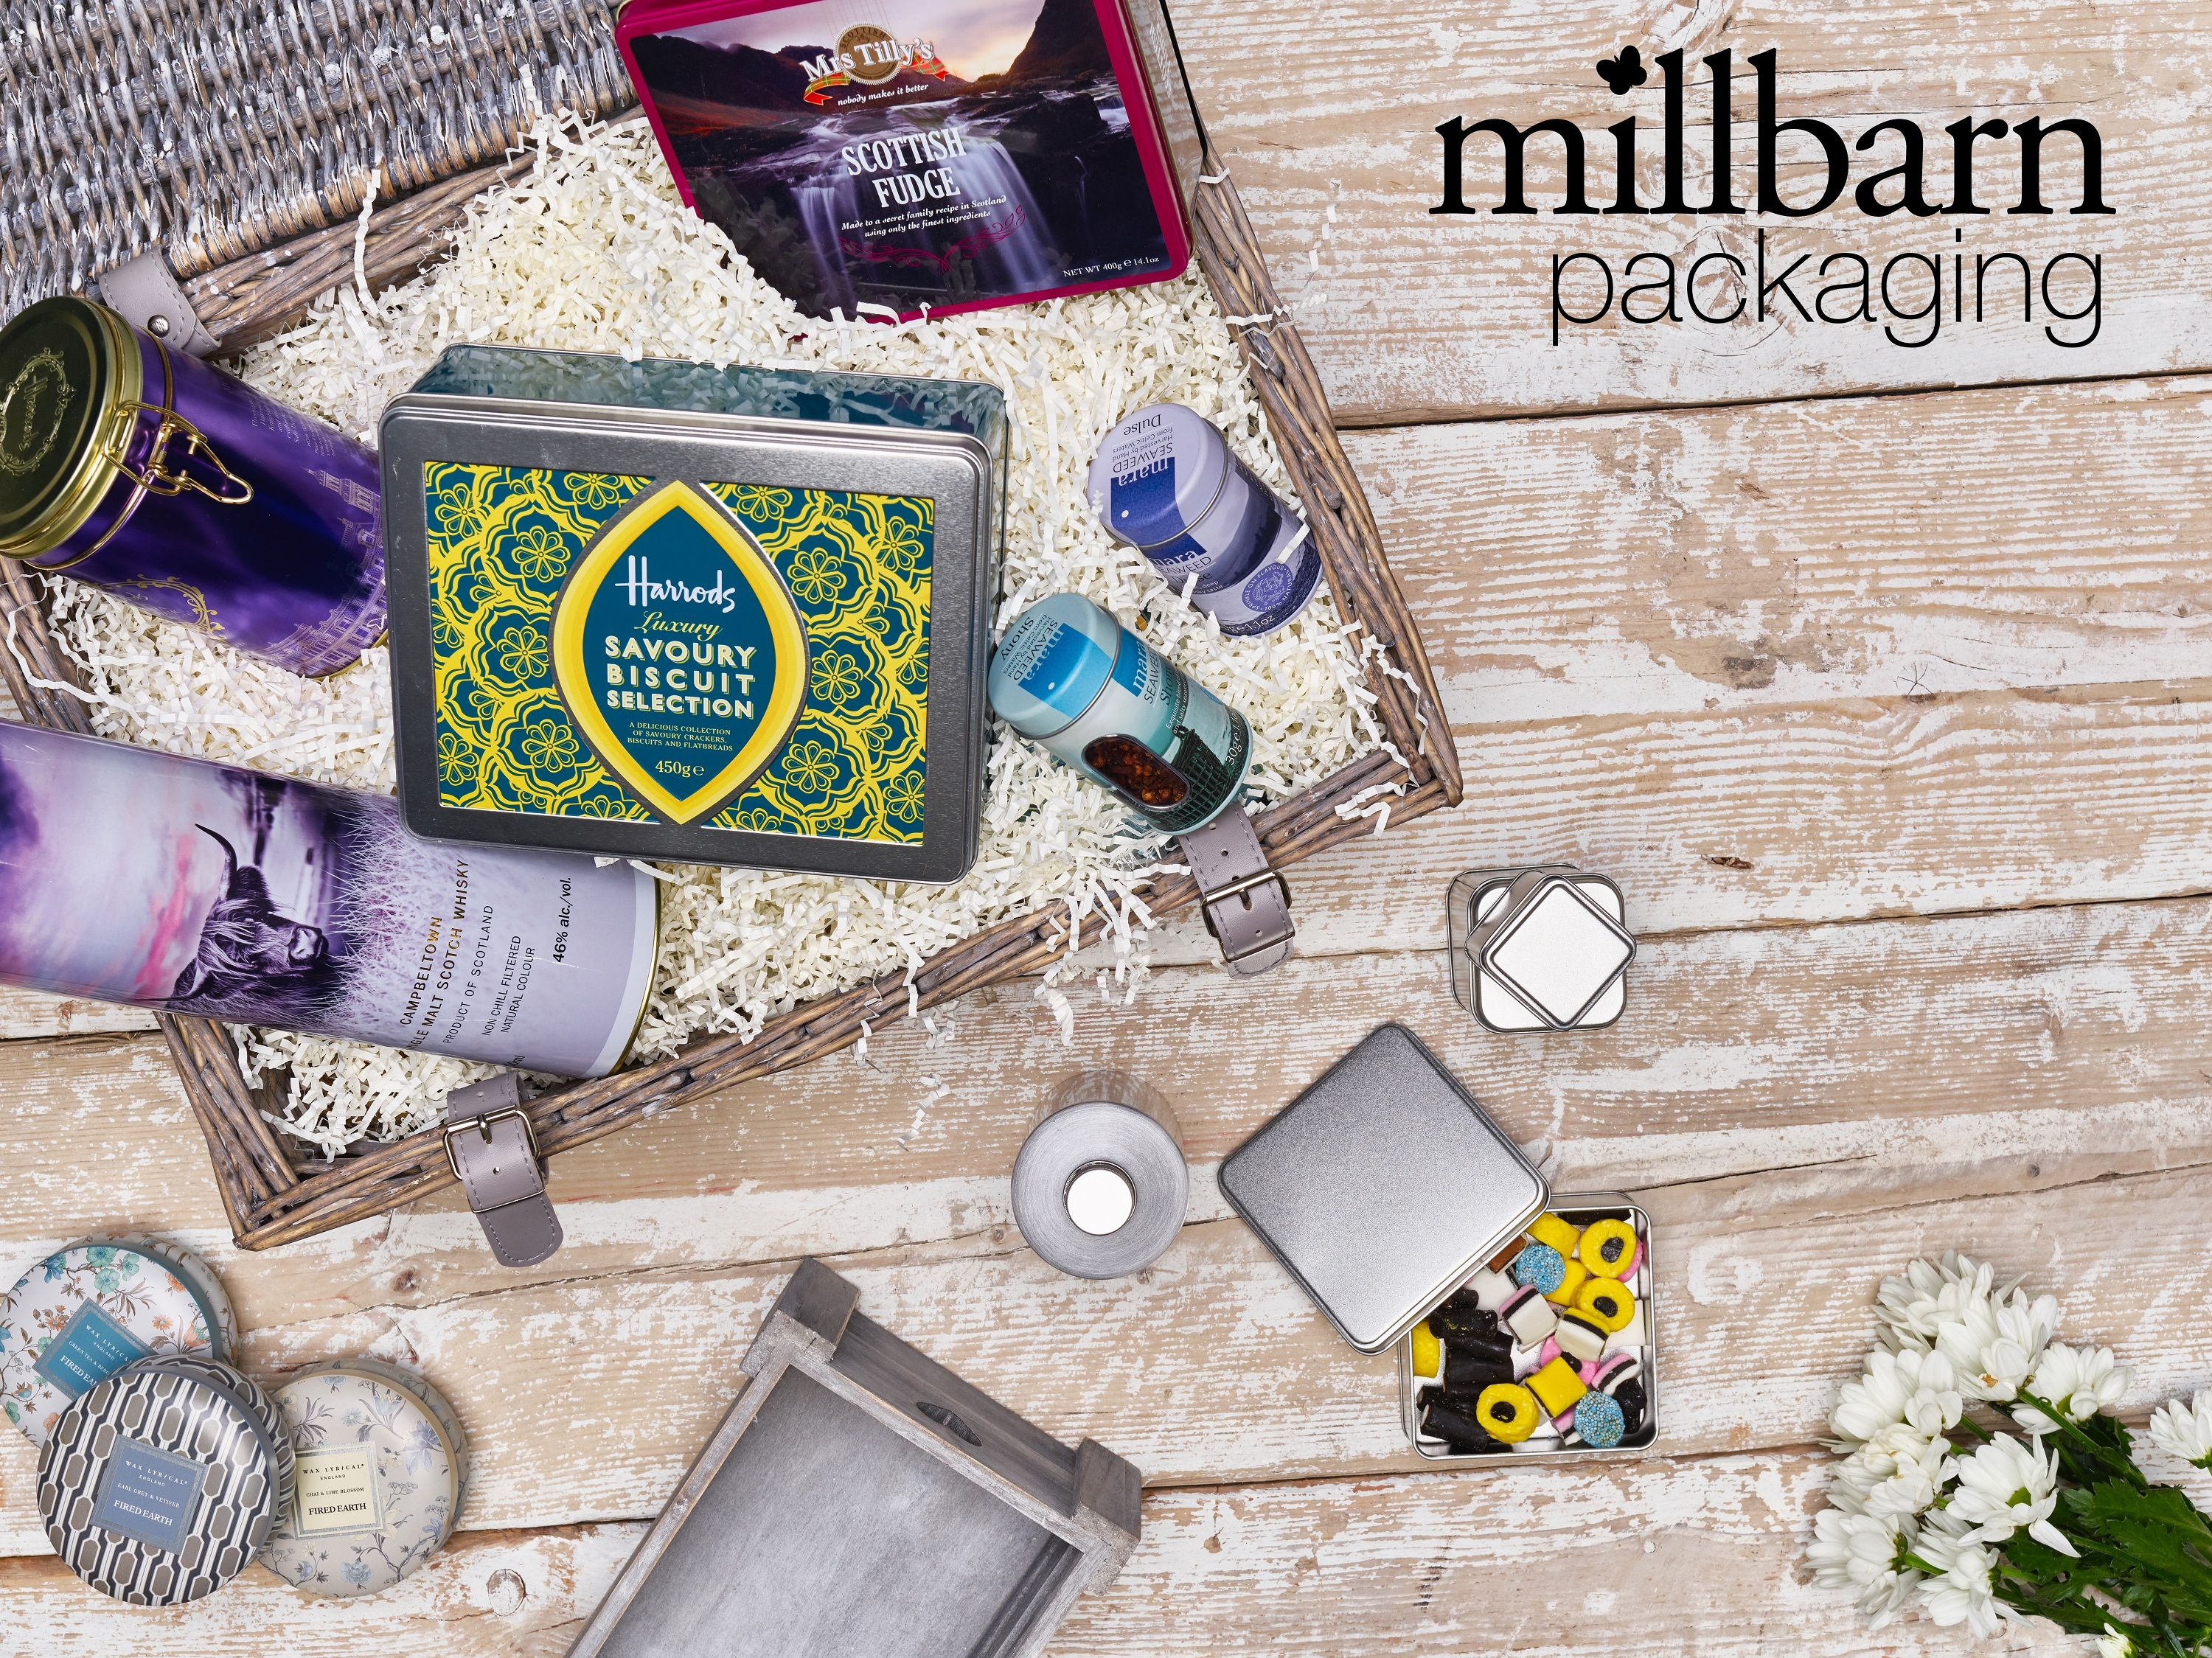 Millbarn Packaging